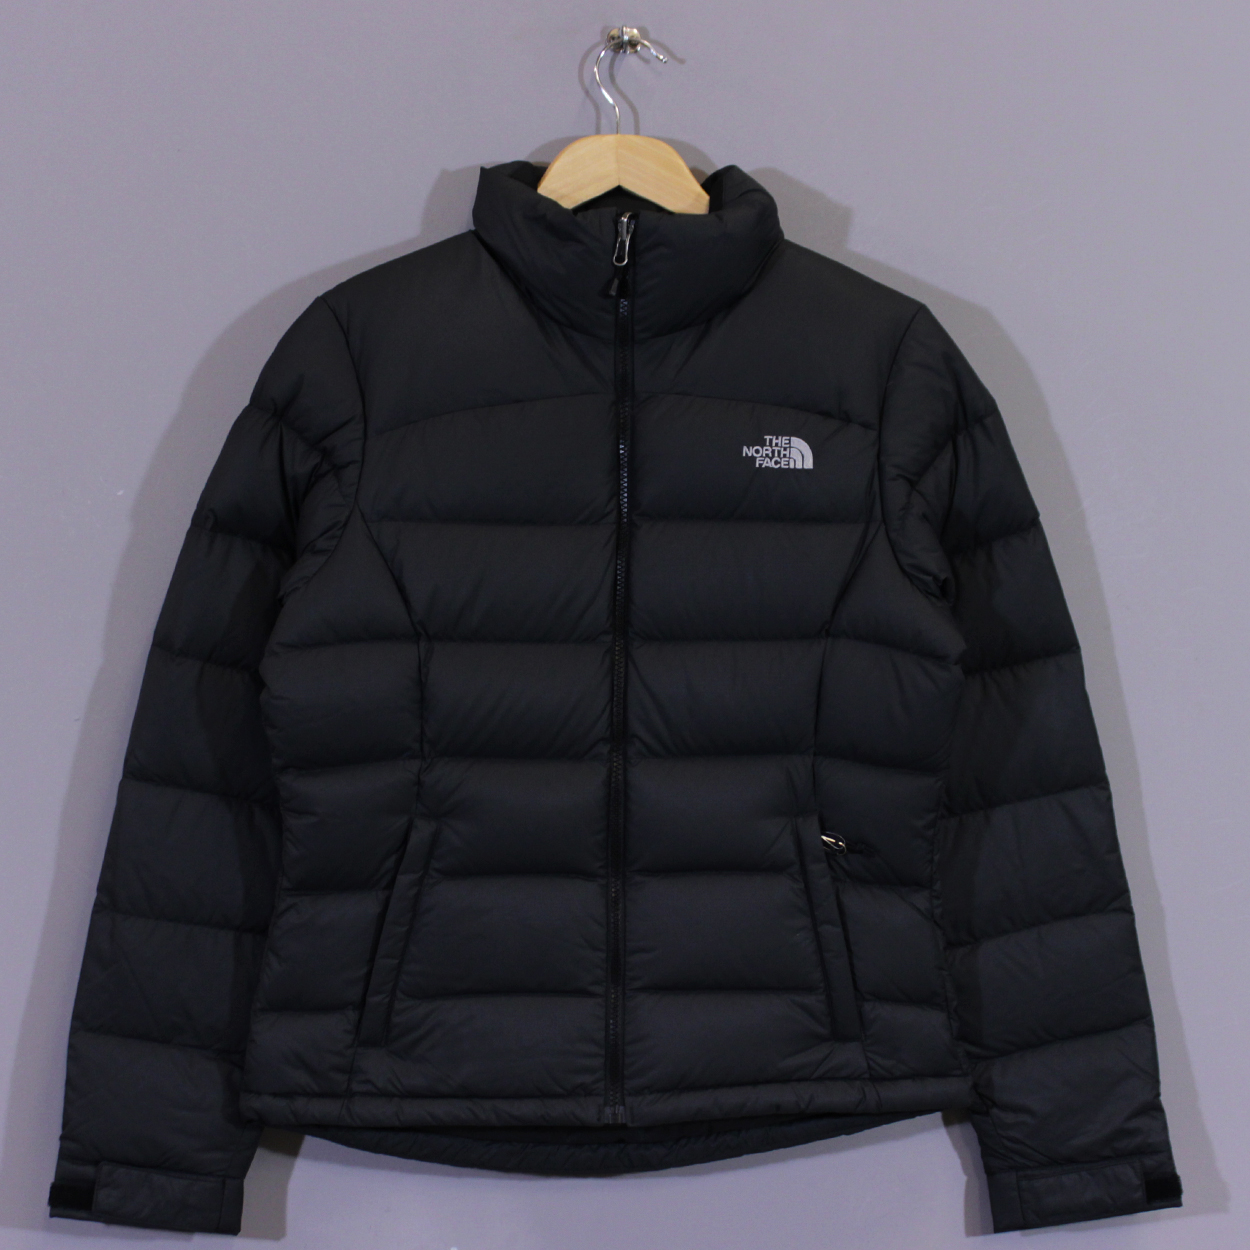 26766bd8fa5 The North Face Womens Nuptse 2 Jacket Black £18.00